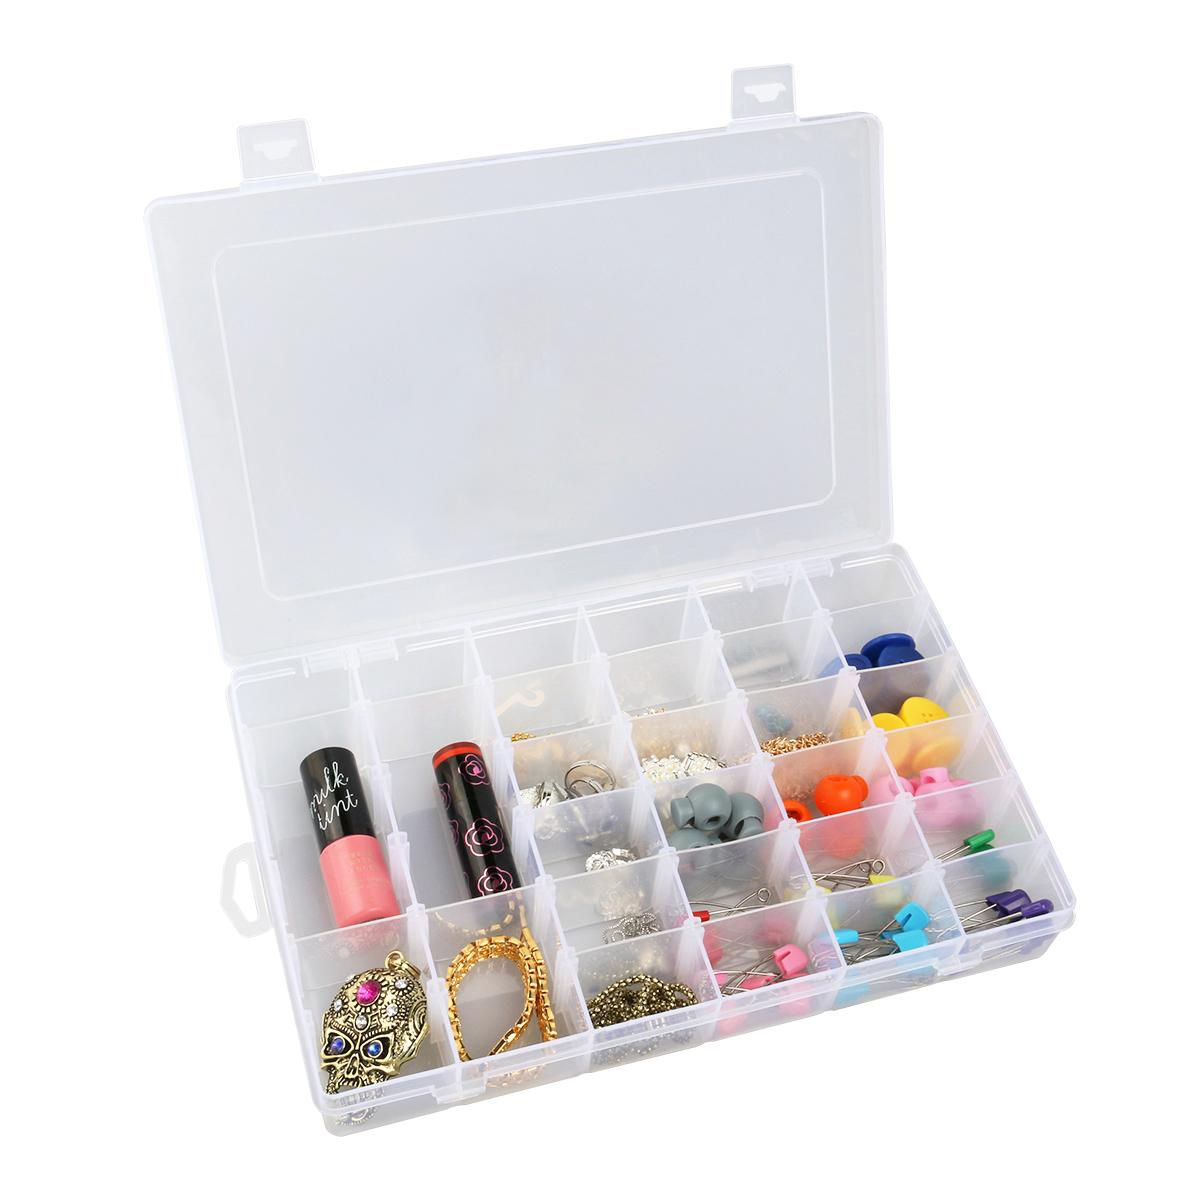 36-Grid Clear Hard Plastic Jewelry Organizer Box Adjustable Storage Container Case with Removable Dividers (Transparent)